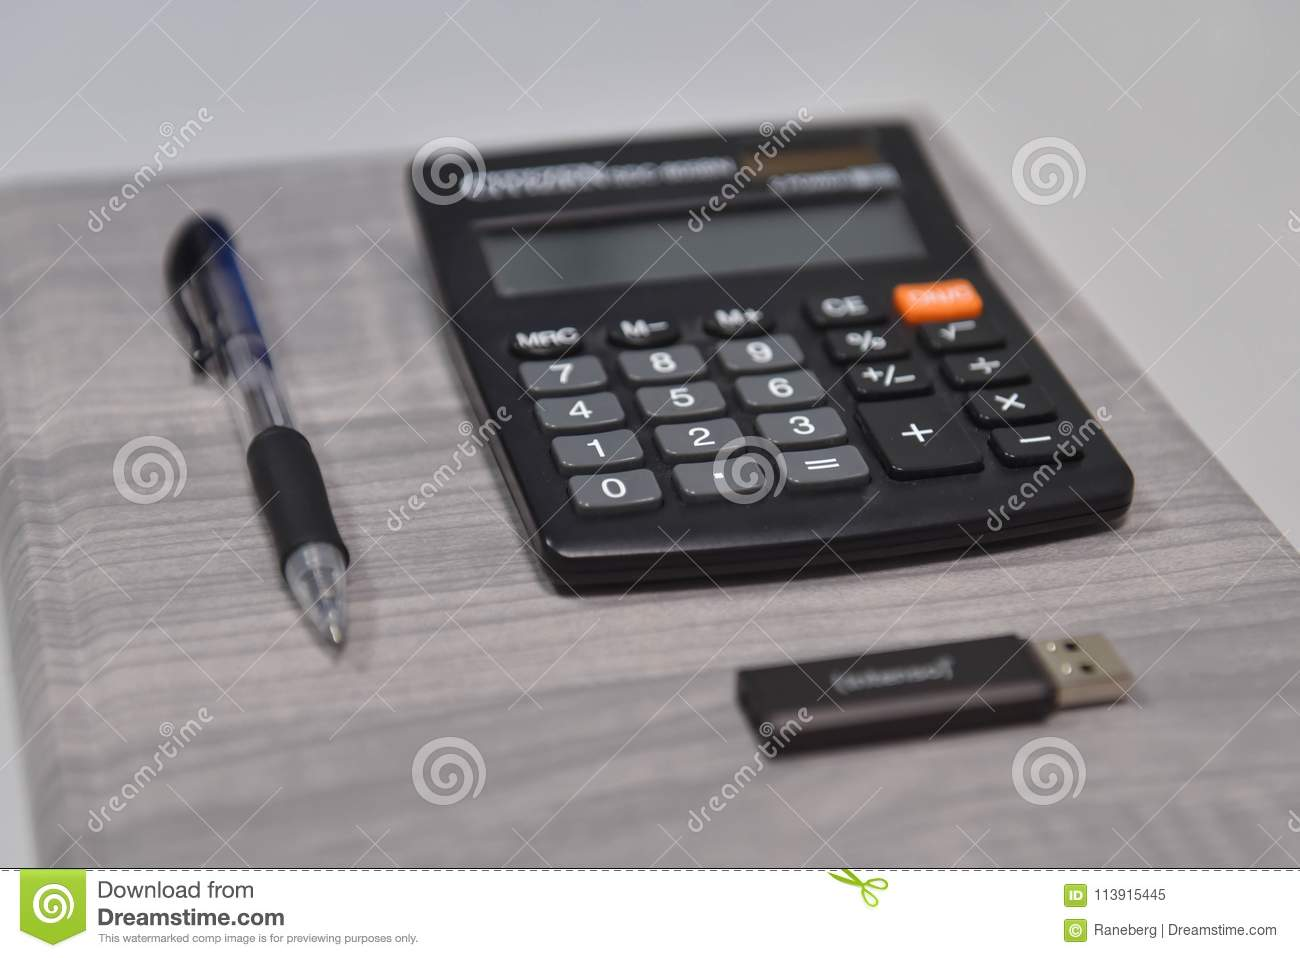 Pen, calculator and usb stick in the office